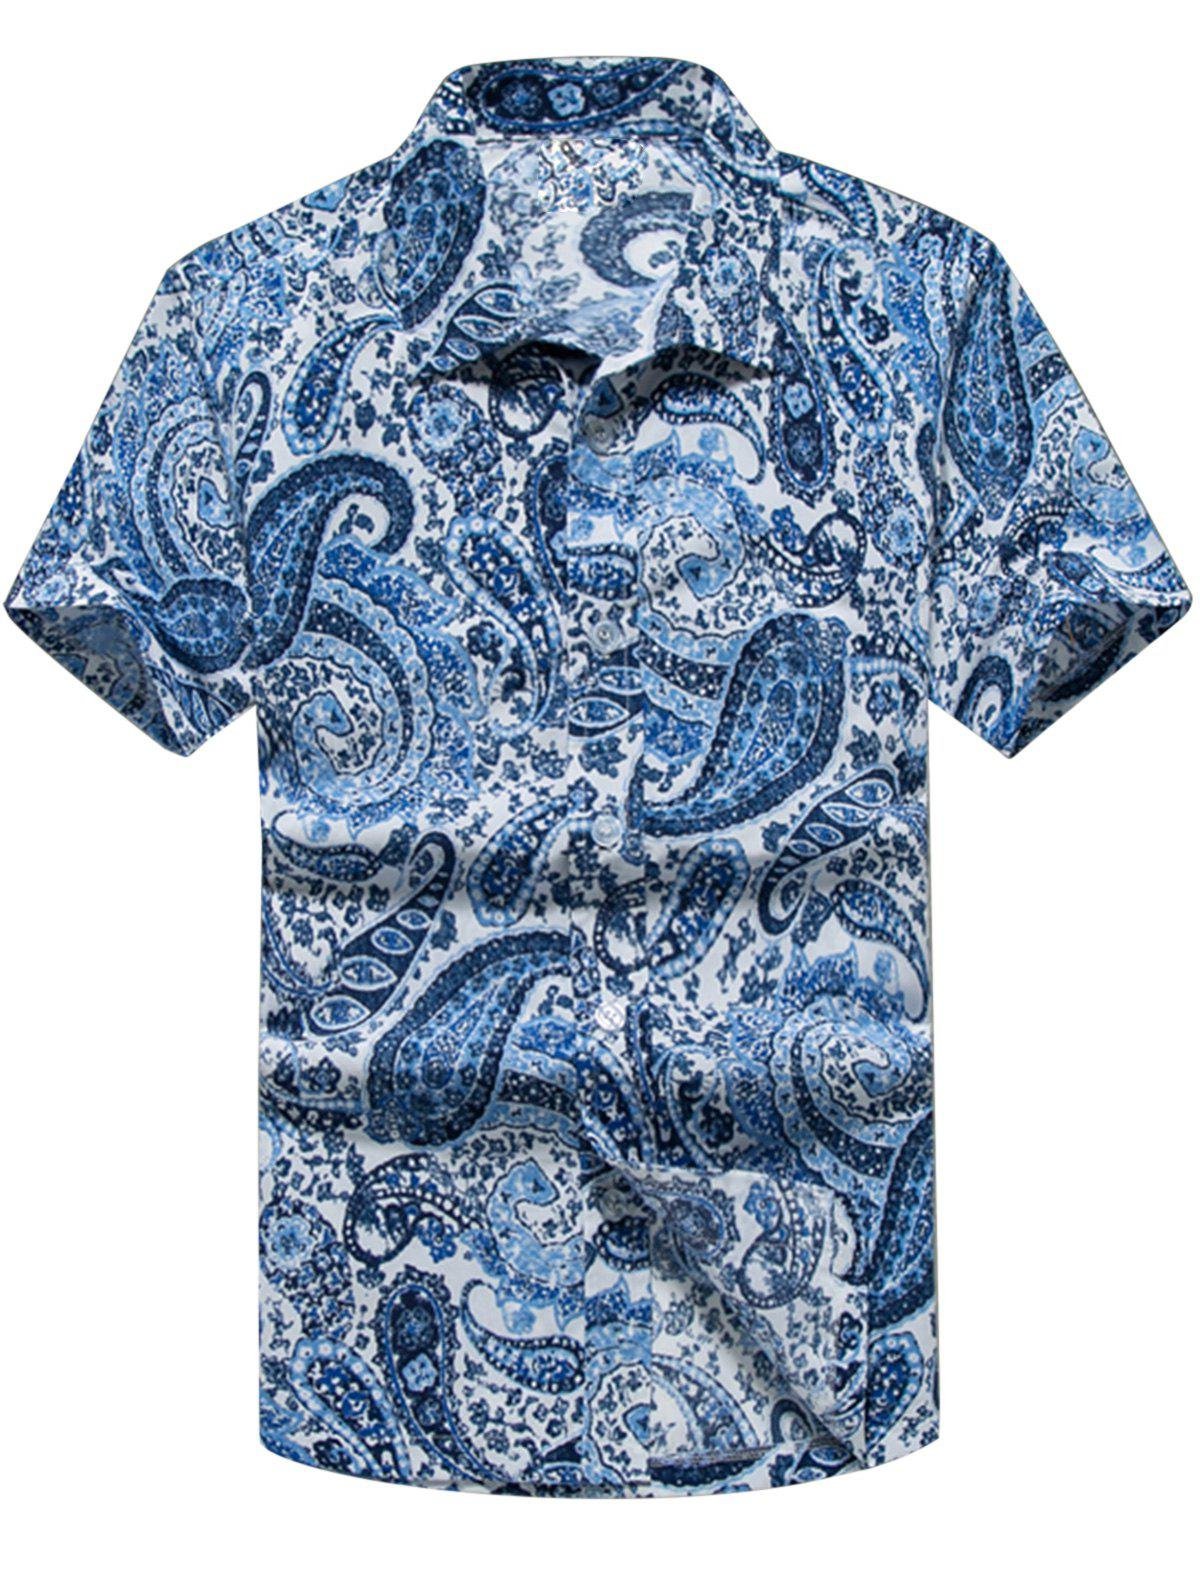 Shop Paisley Print Casual Short Sleeve Shirt